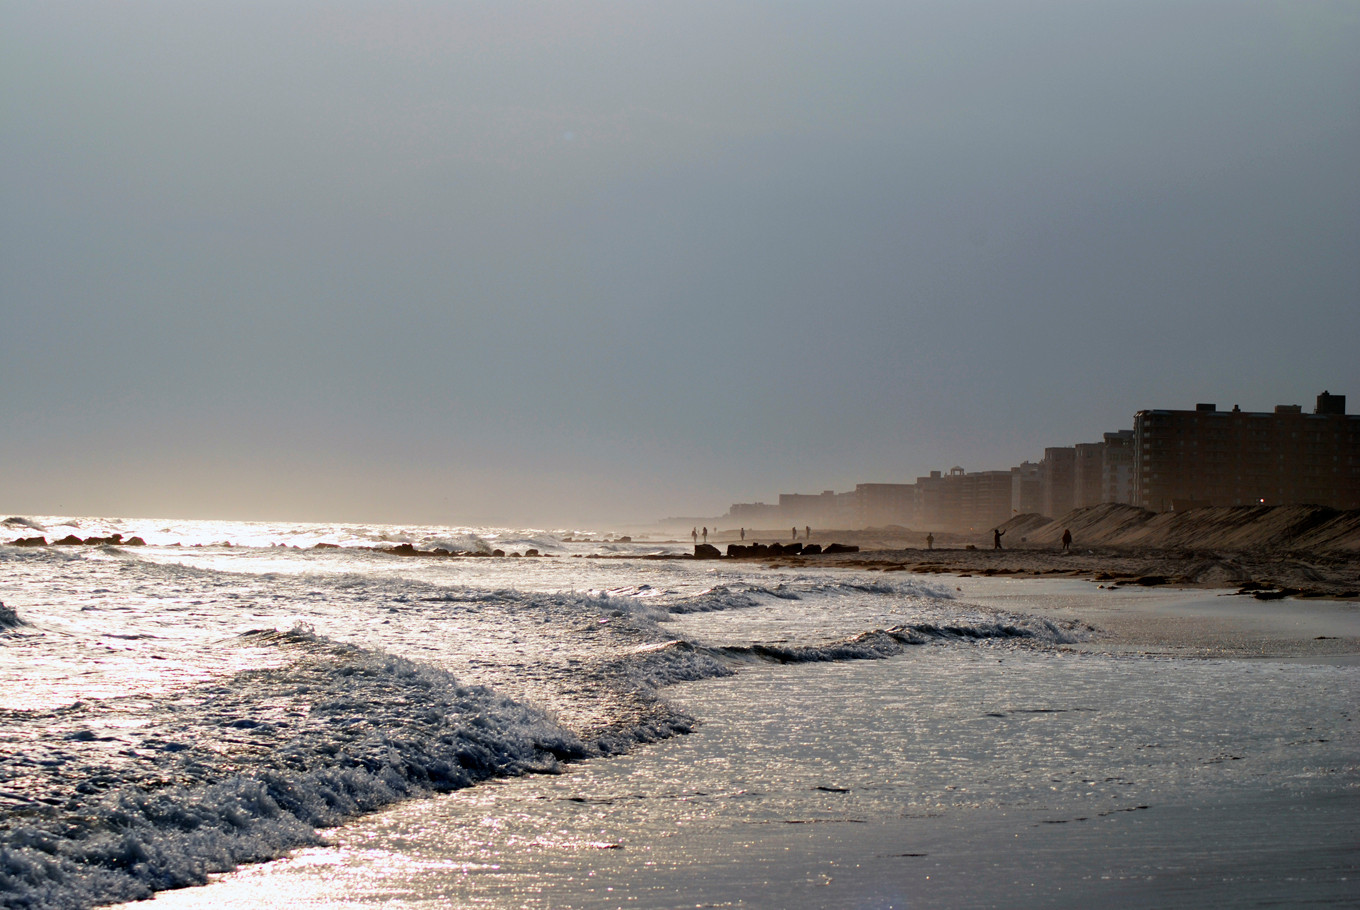 The Department of Health said that it will begin testing county beaches this week.